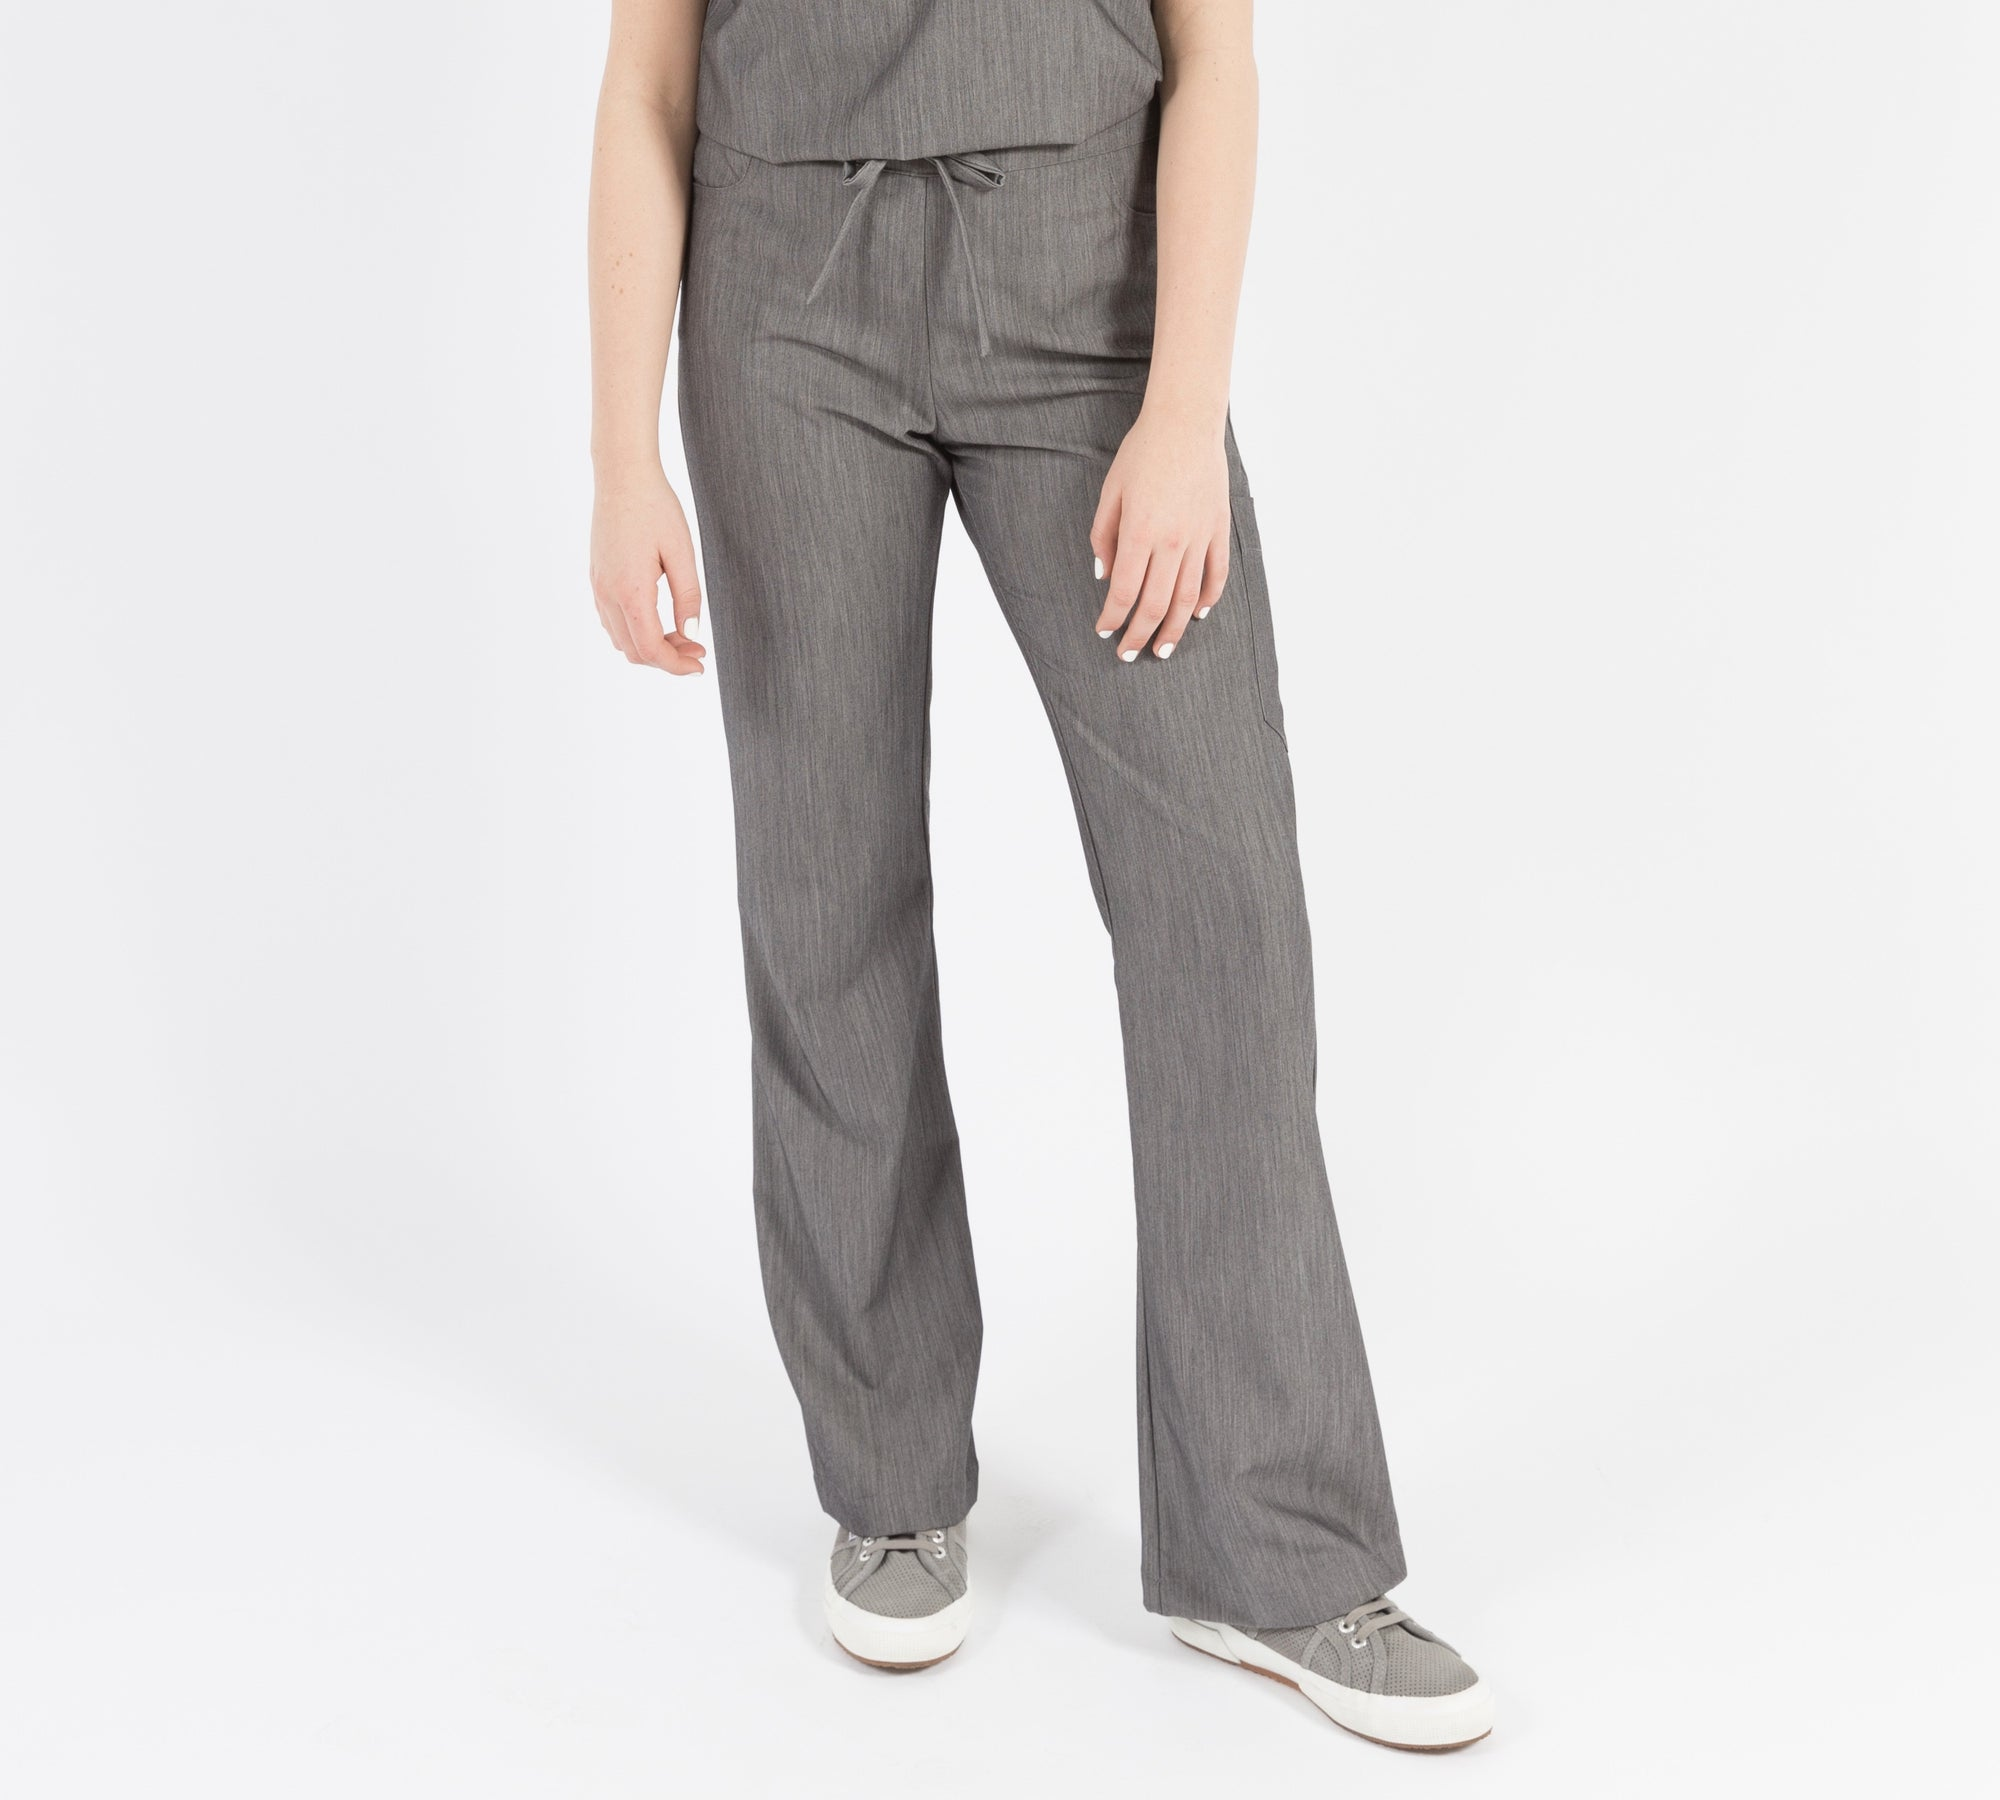 Maverick Pant - Tall (Granite Smoothie) XXS | Fabled makes beautiful high quality scrub pants for women. Scrubs fashion for women doctors and female medical workers.